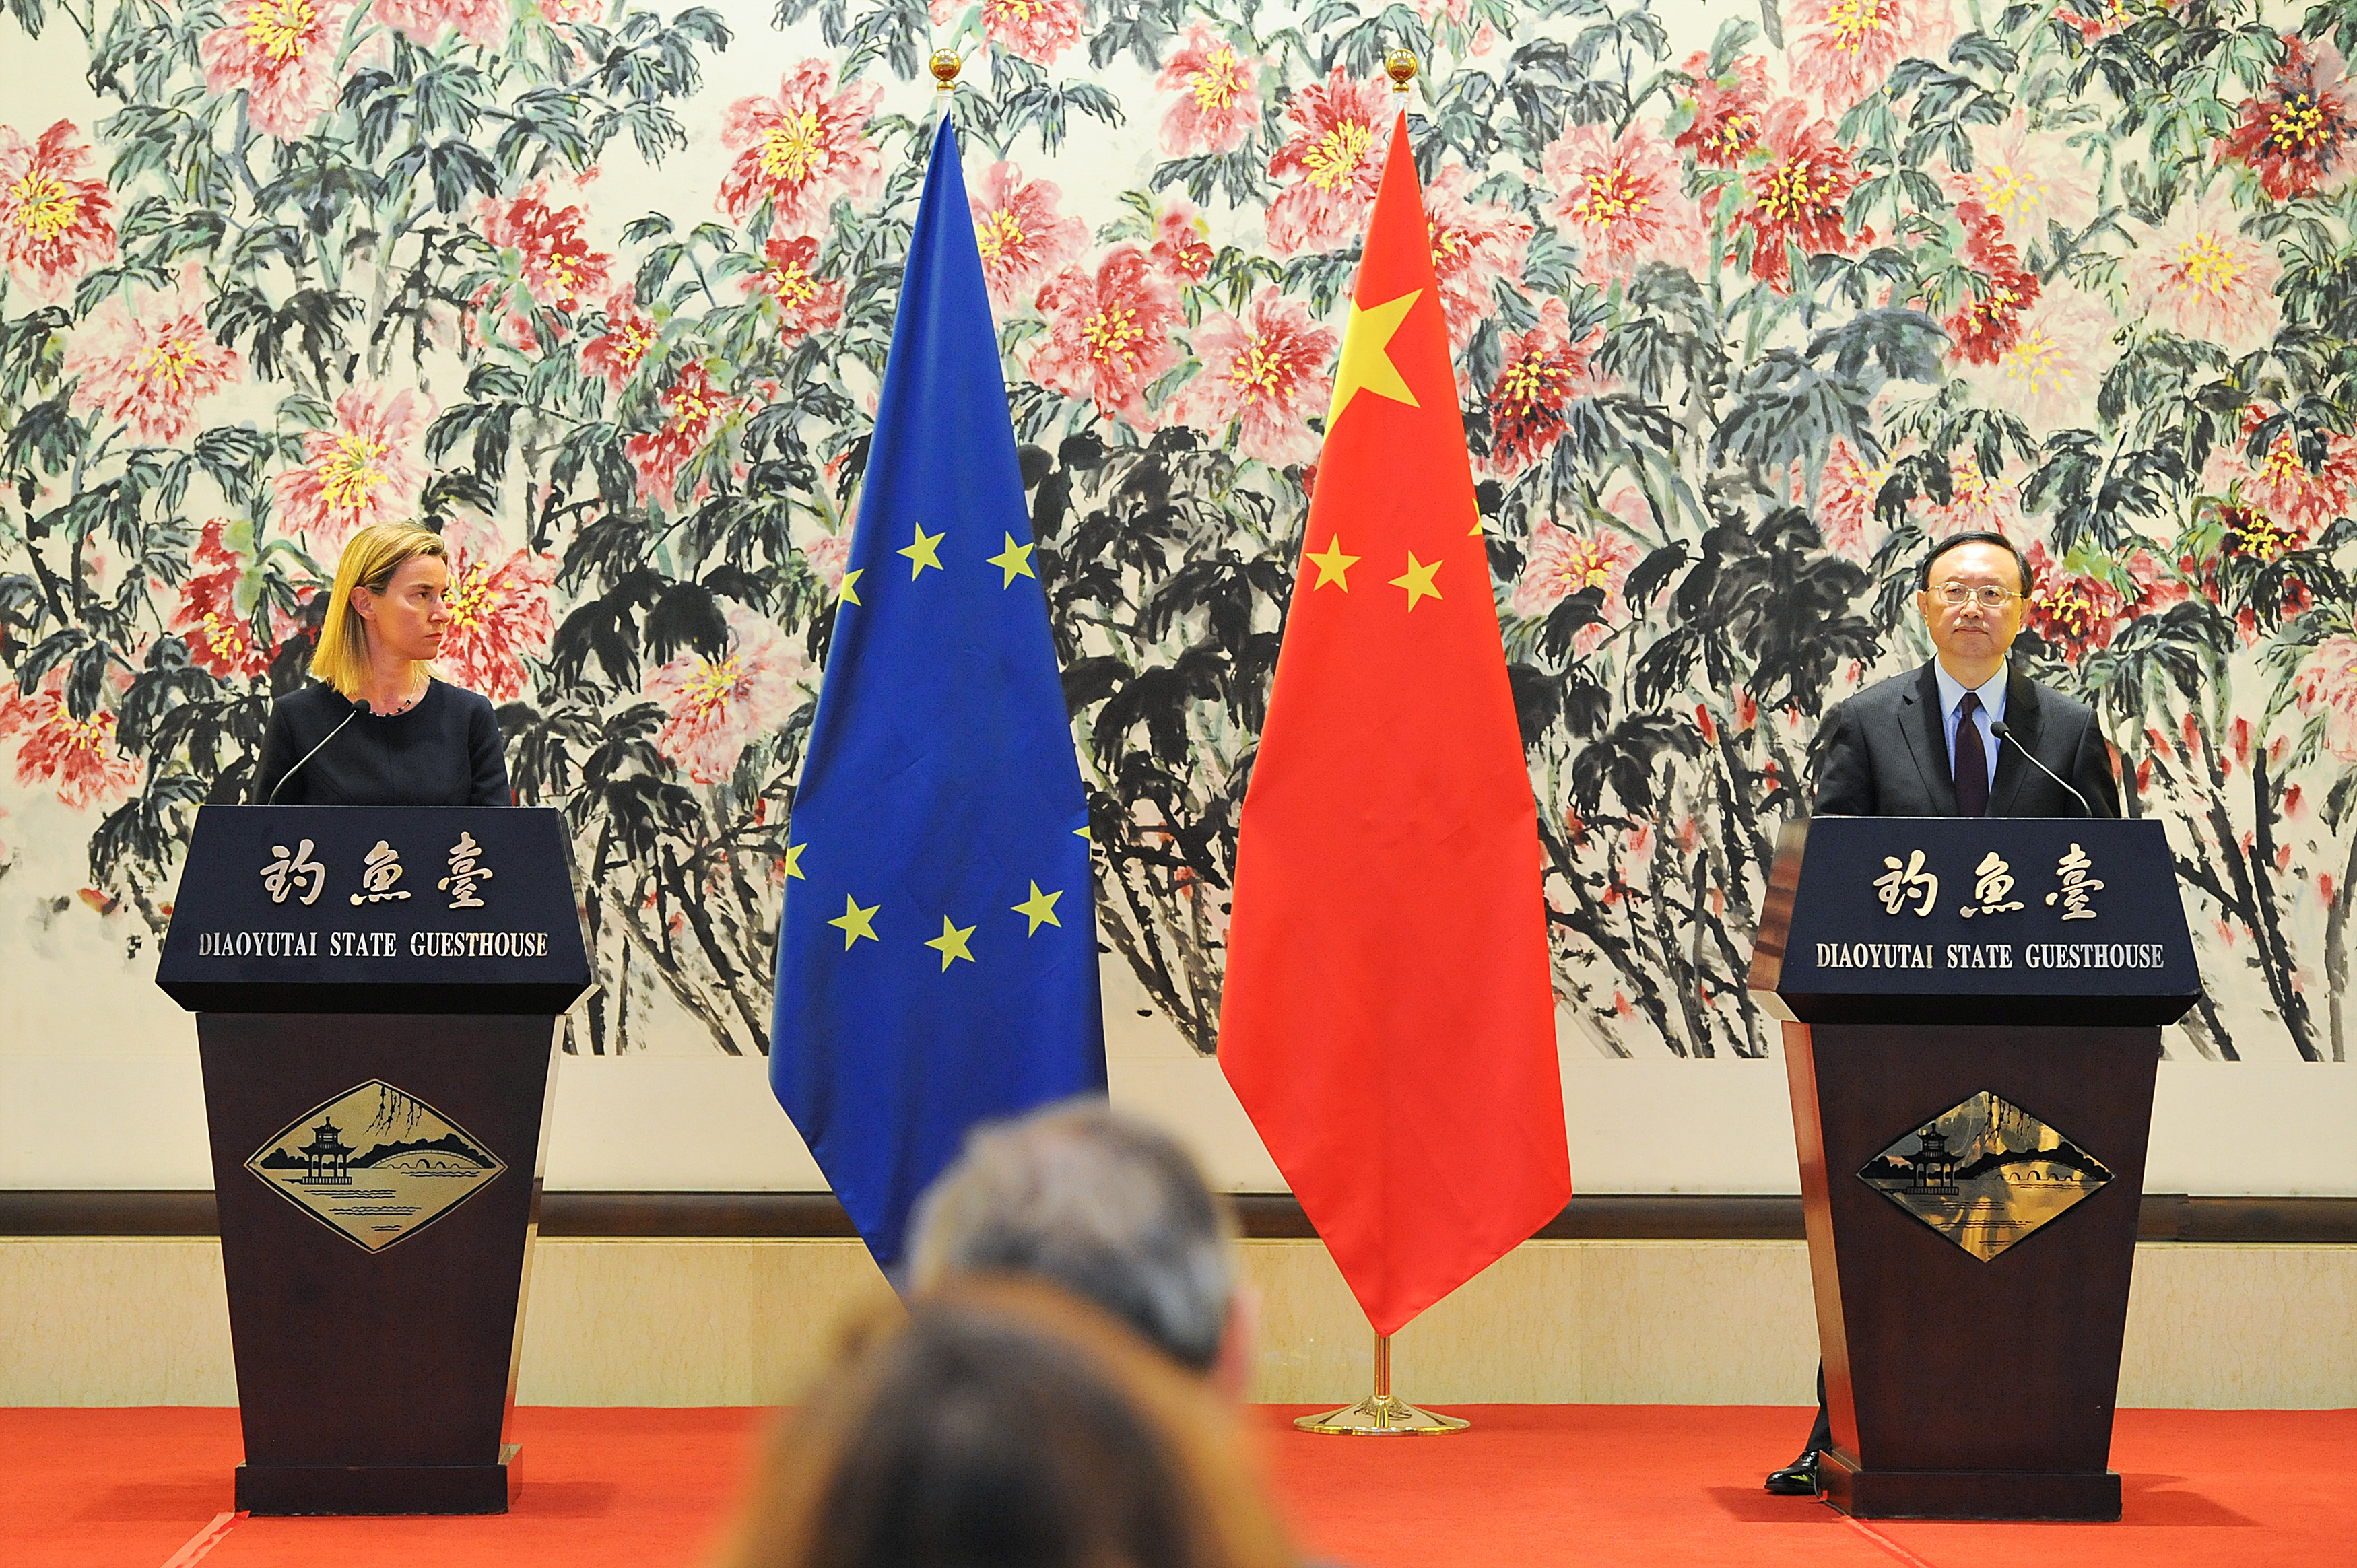 G20 Summit, Brisbane 2014: bilateral meeting between Jean-Claude JUNCKER, President of the EC, and XI Jinping, Chinese President